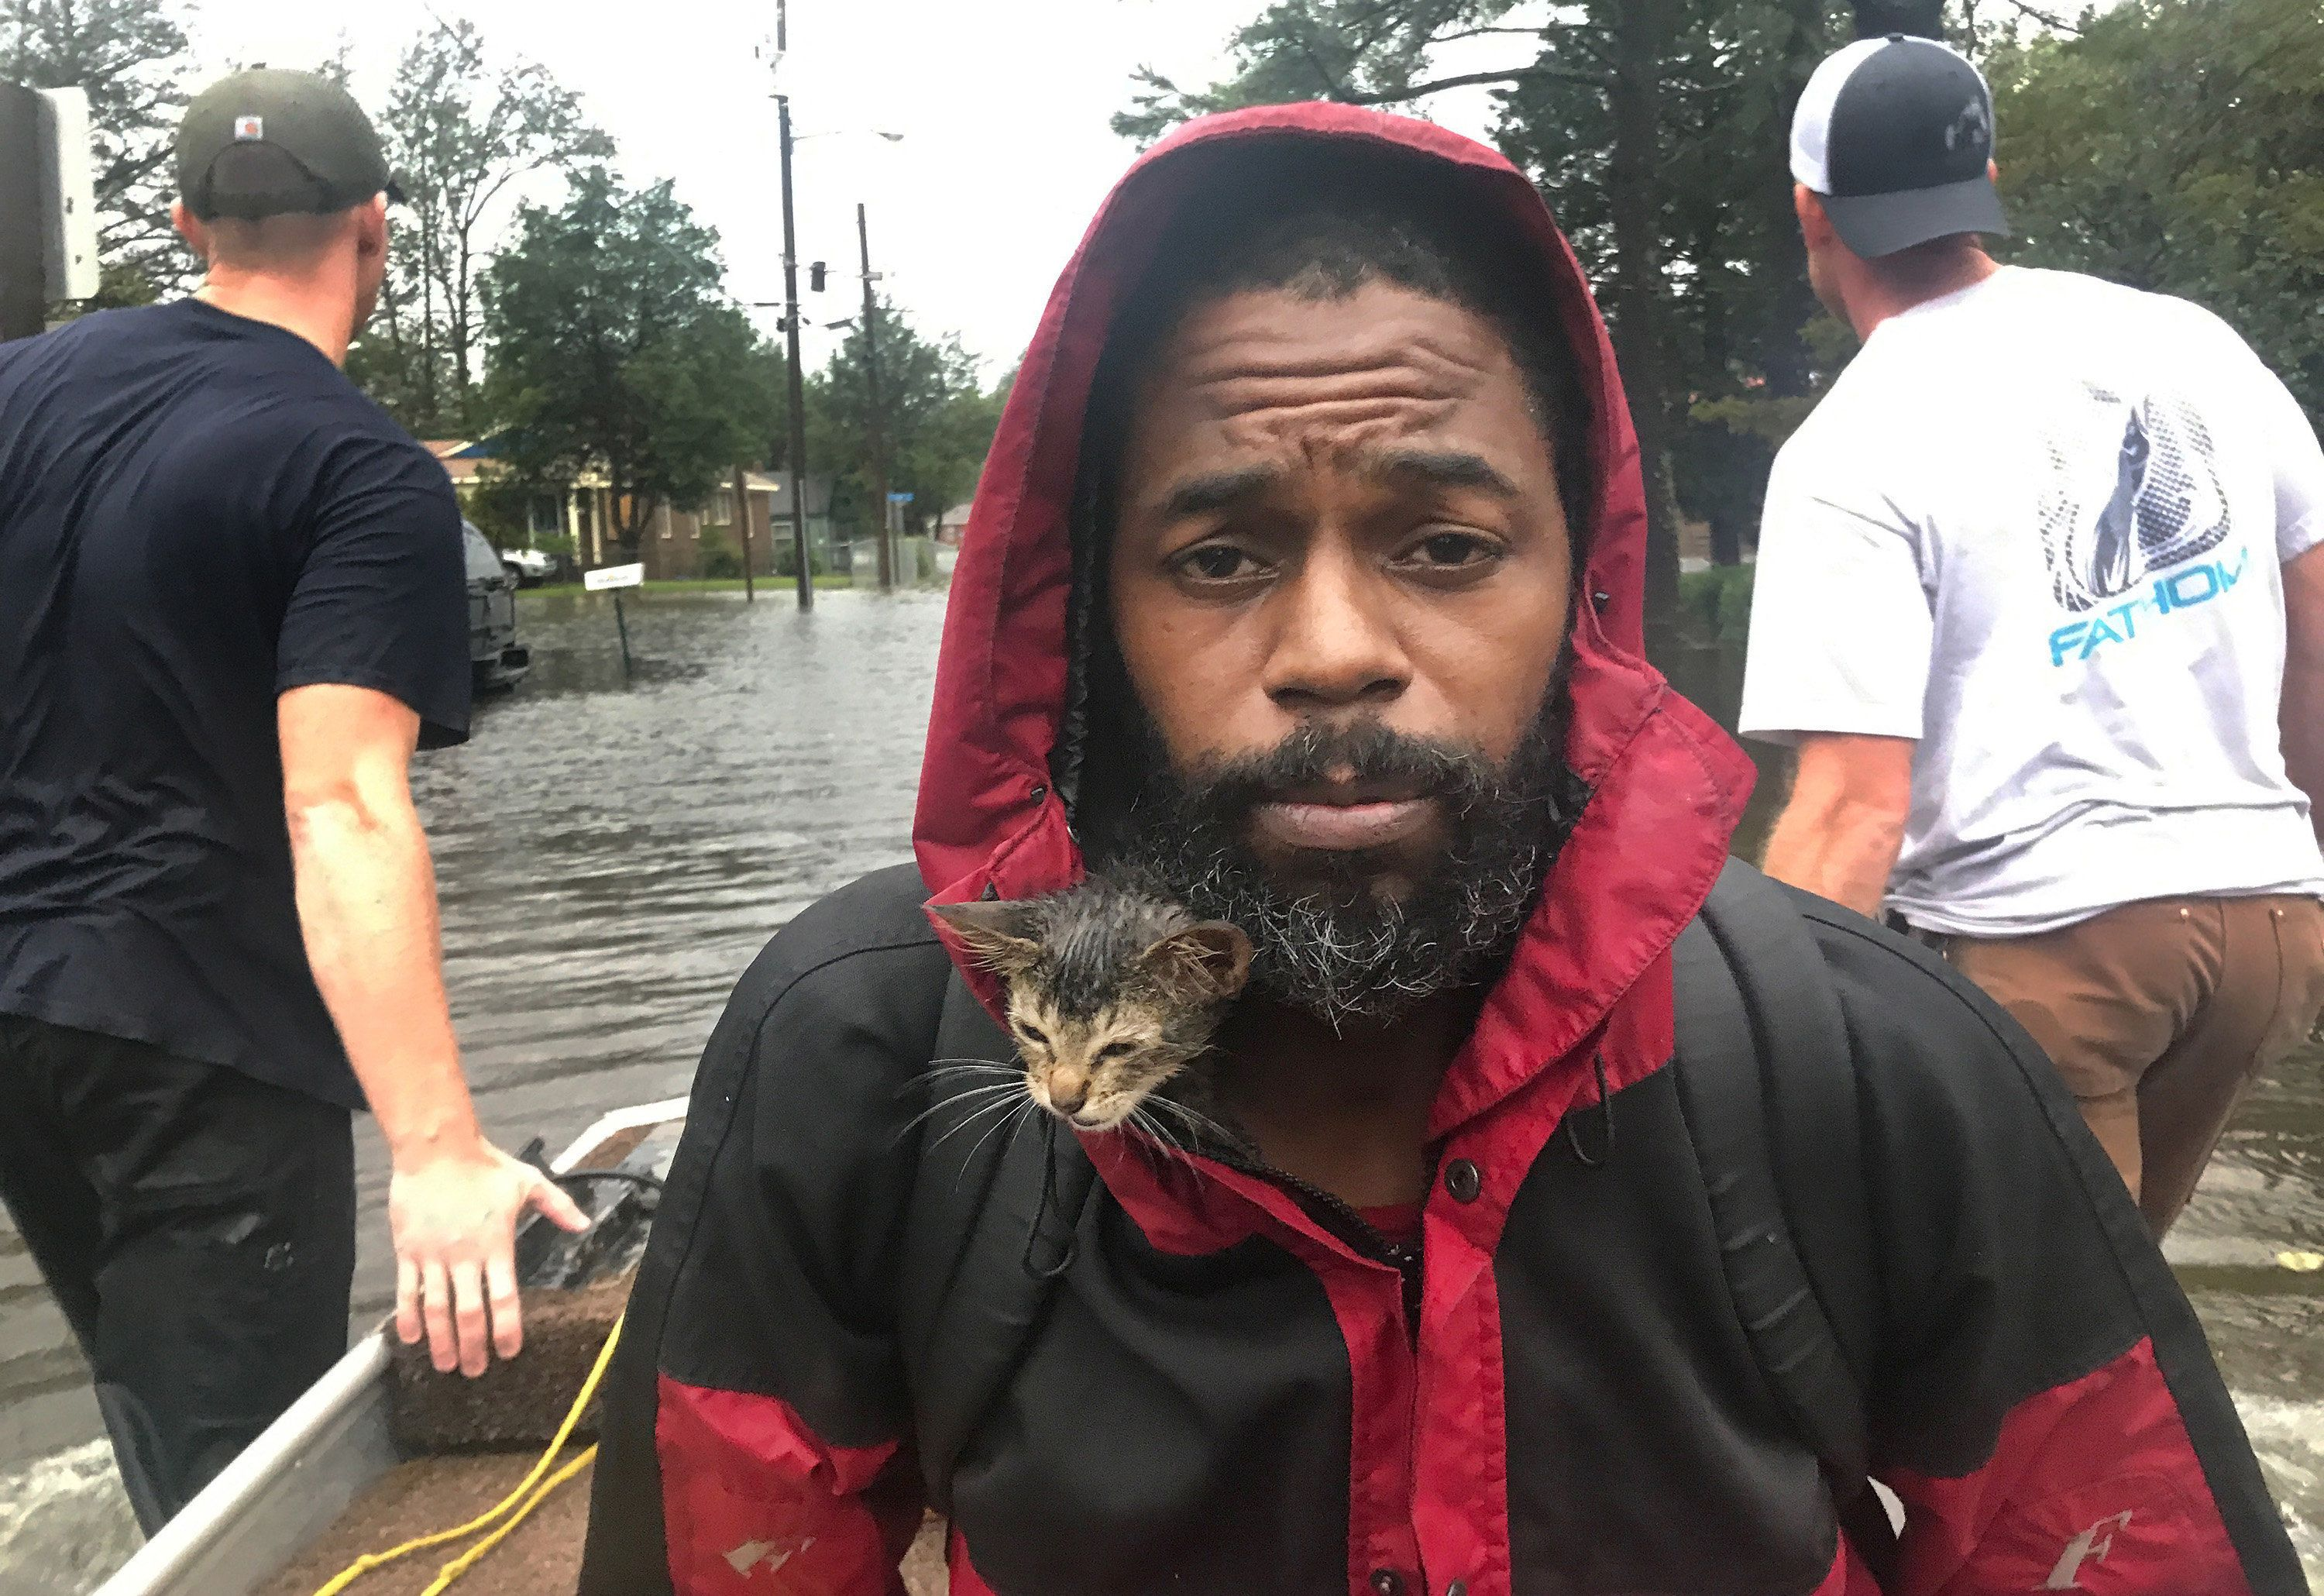 Kitten named 'Survivor' rescued with owner from Hurricane Florence